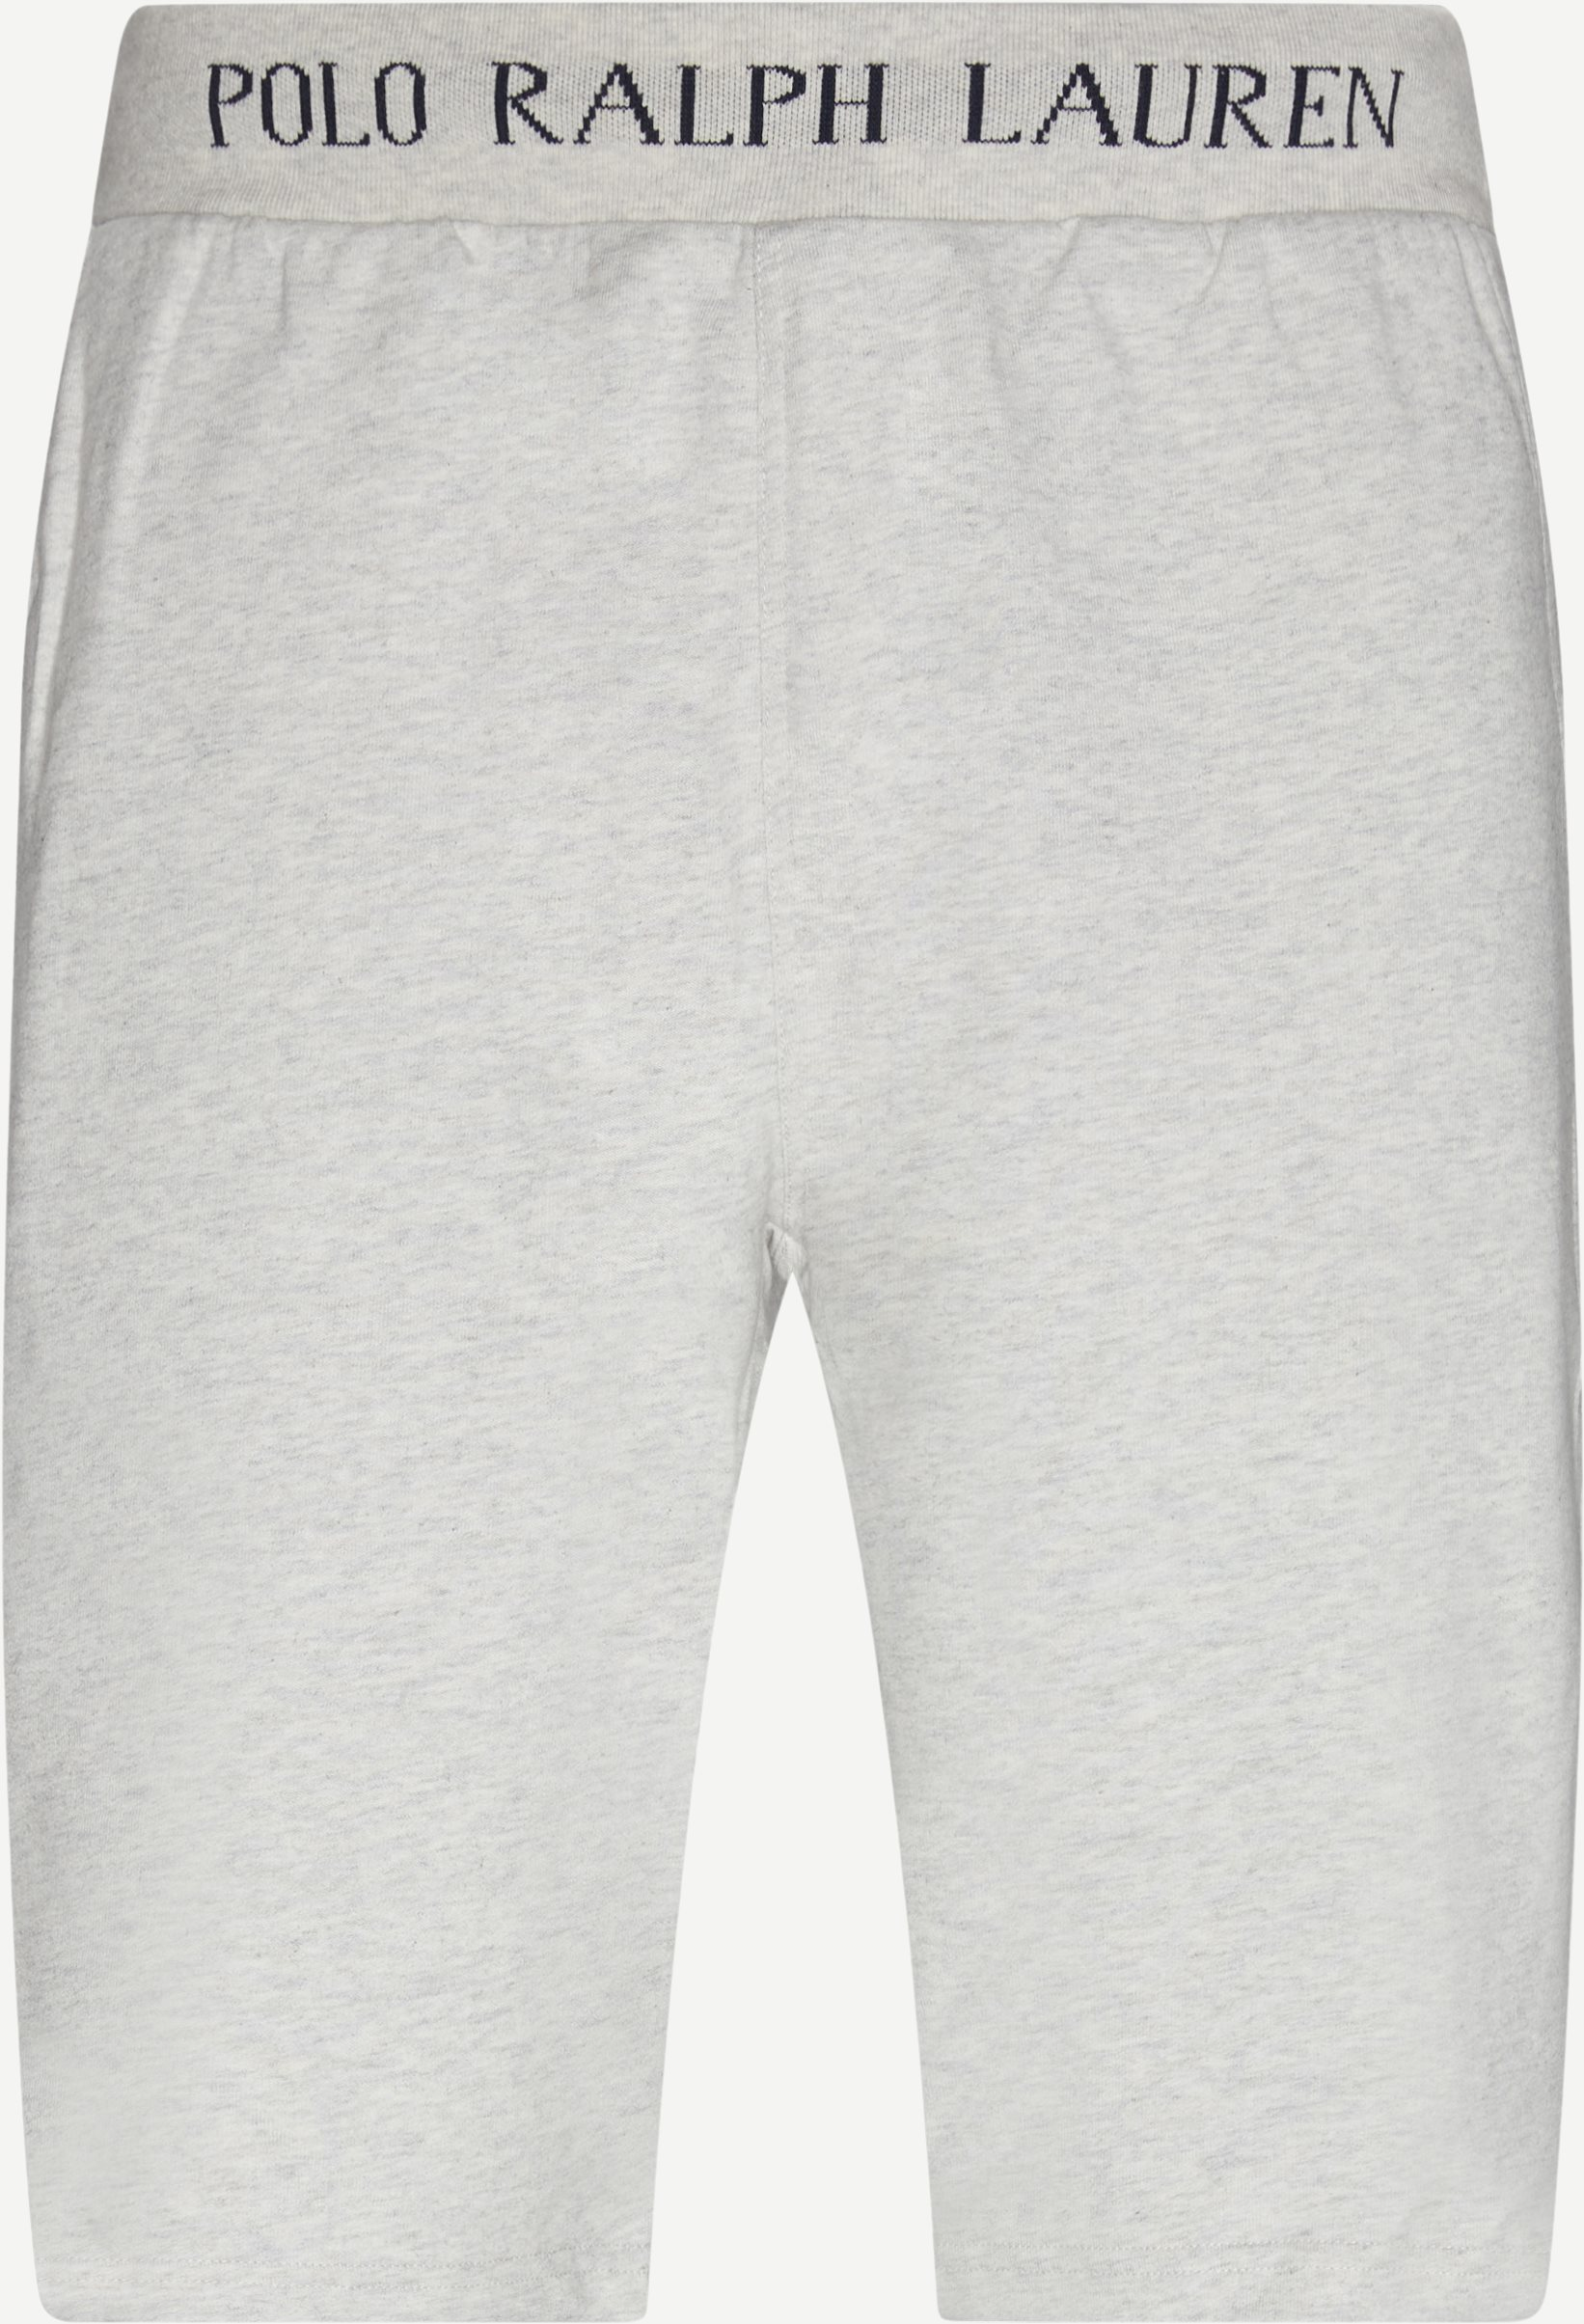 Logo Sweatshorts - Shorts - Regular - Grå